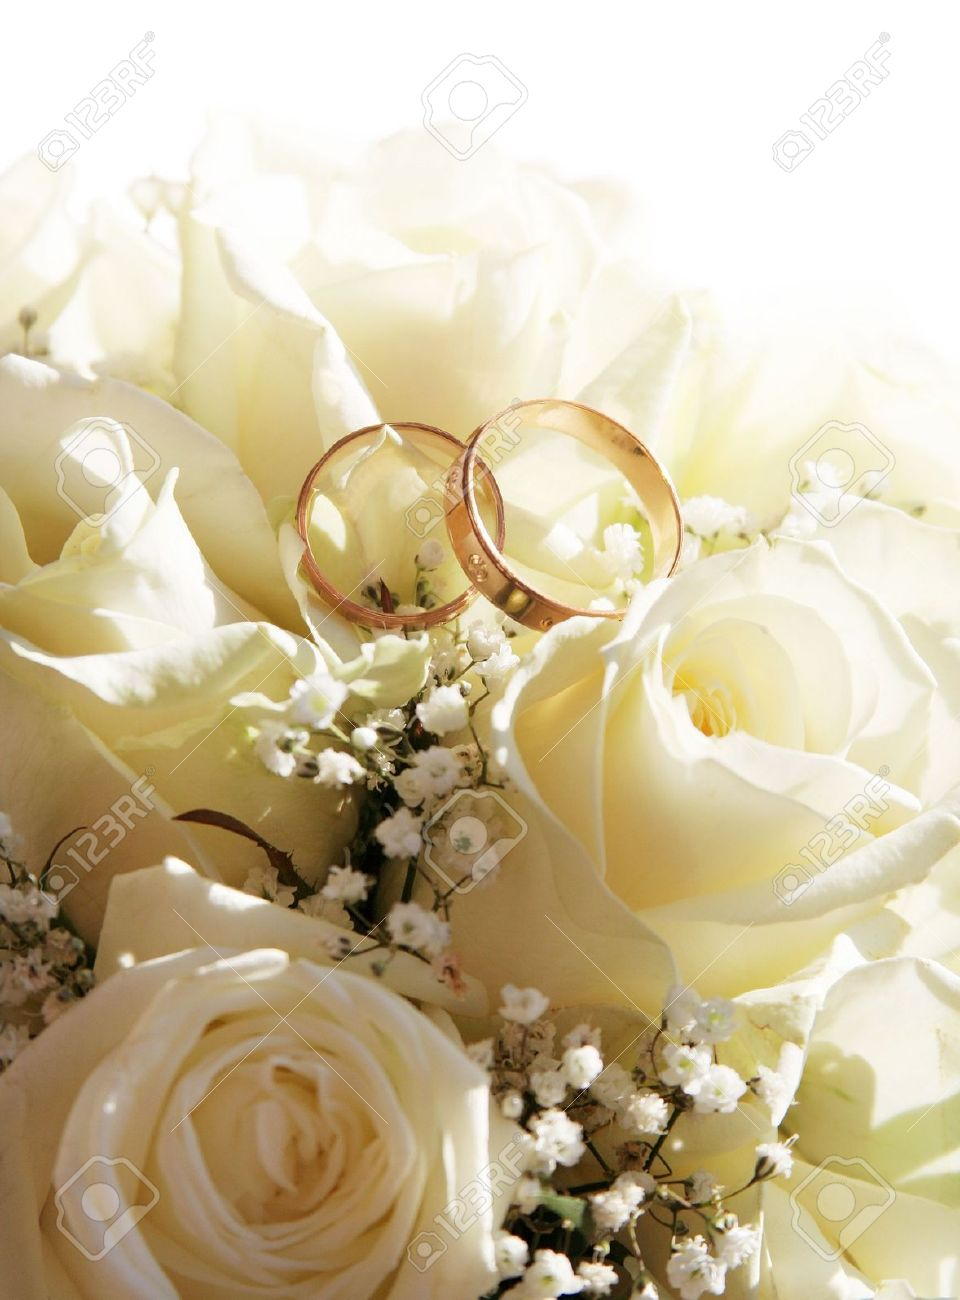 Wedding Rings And Roses Can Use As Background Stock Photo Picture